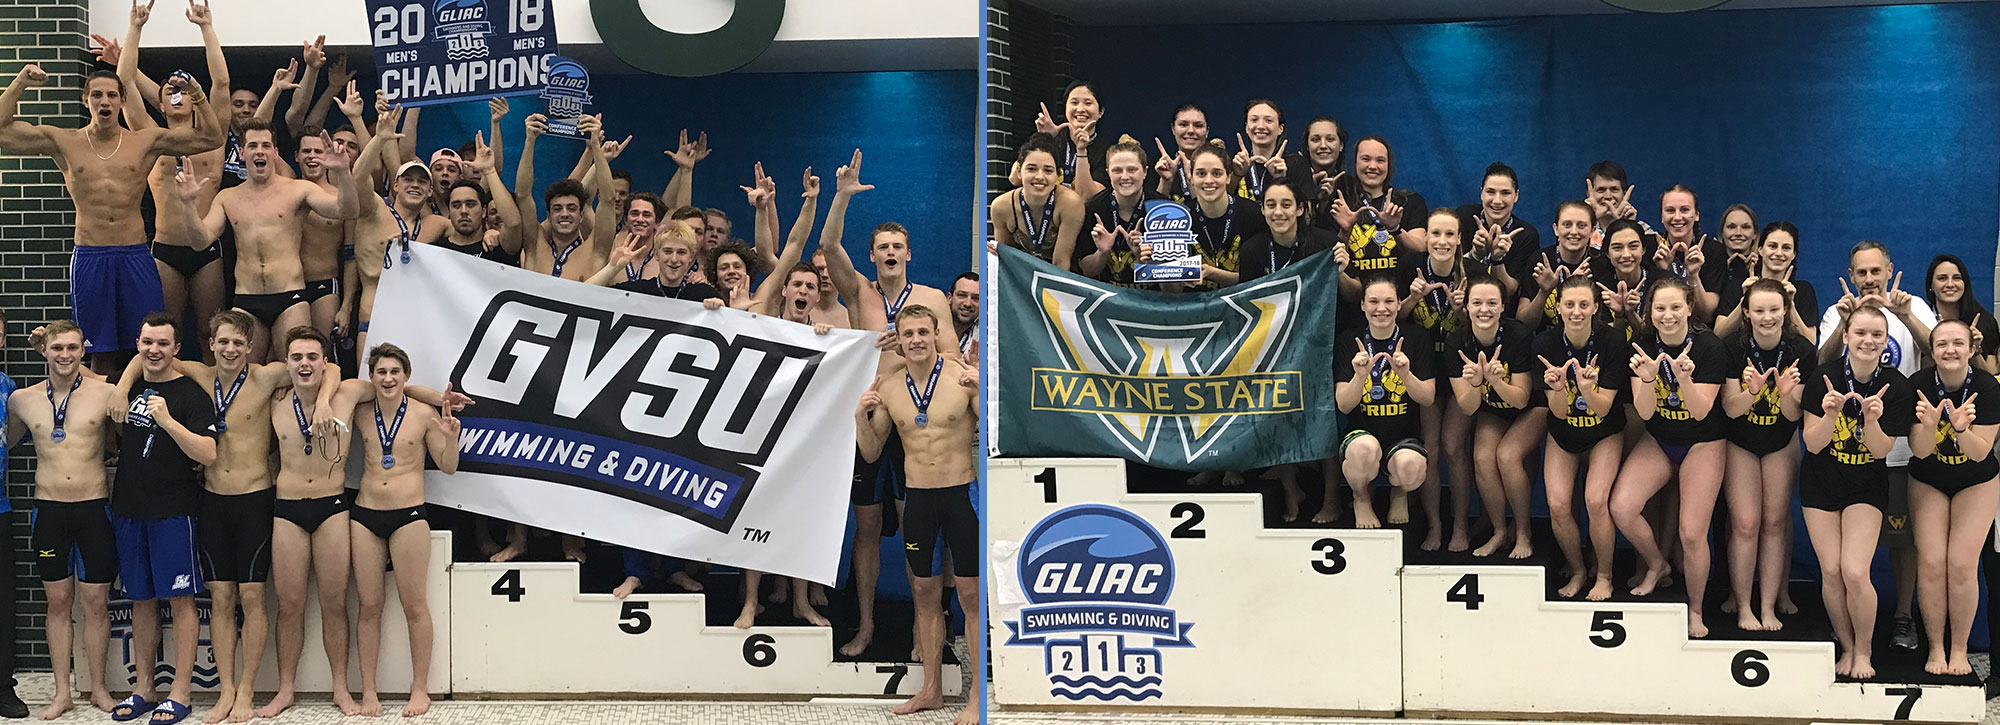 Grand Valley State Men, Wayne State Women Capture 2018 GLIAC Swimming & Diving Championships